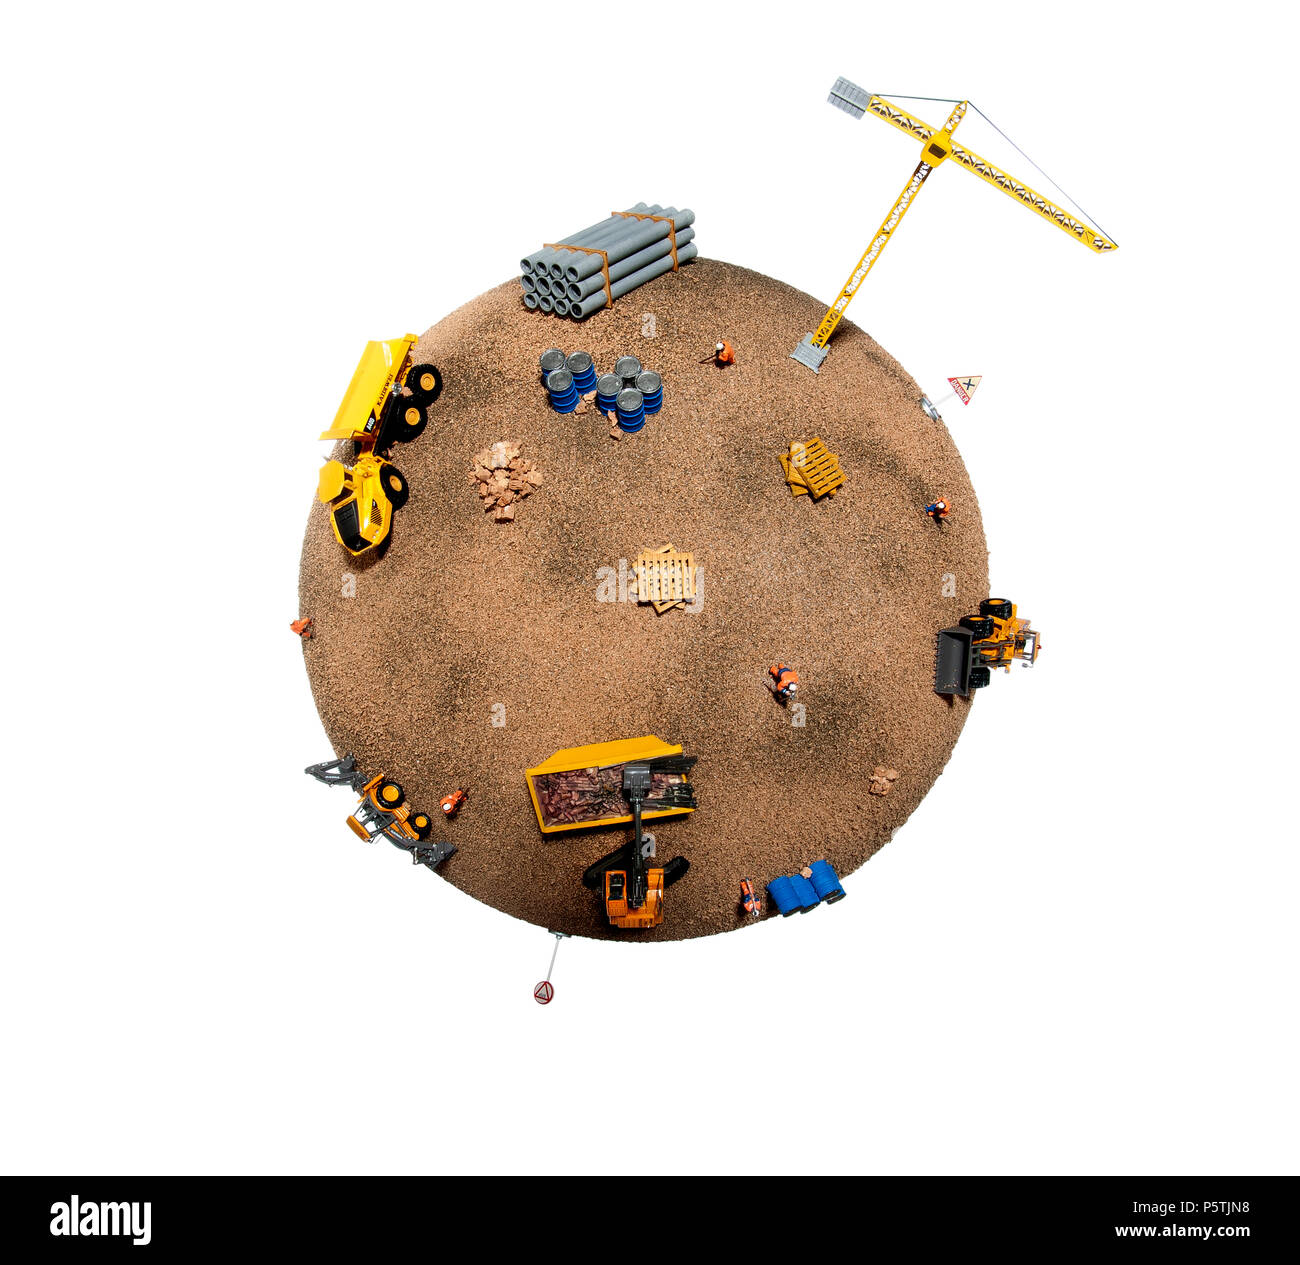 A representation of the planet showing the damage done by building and construction. - Stock Image